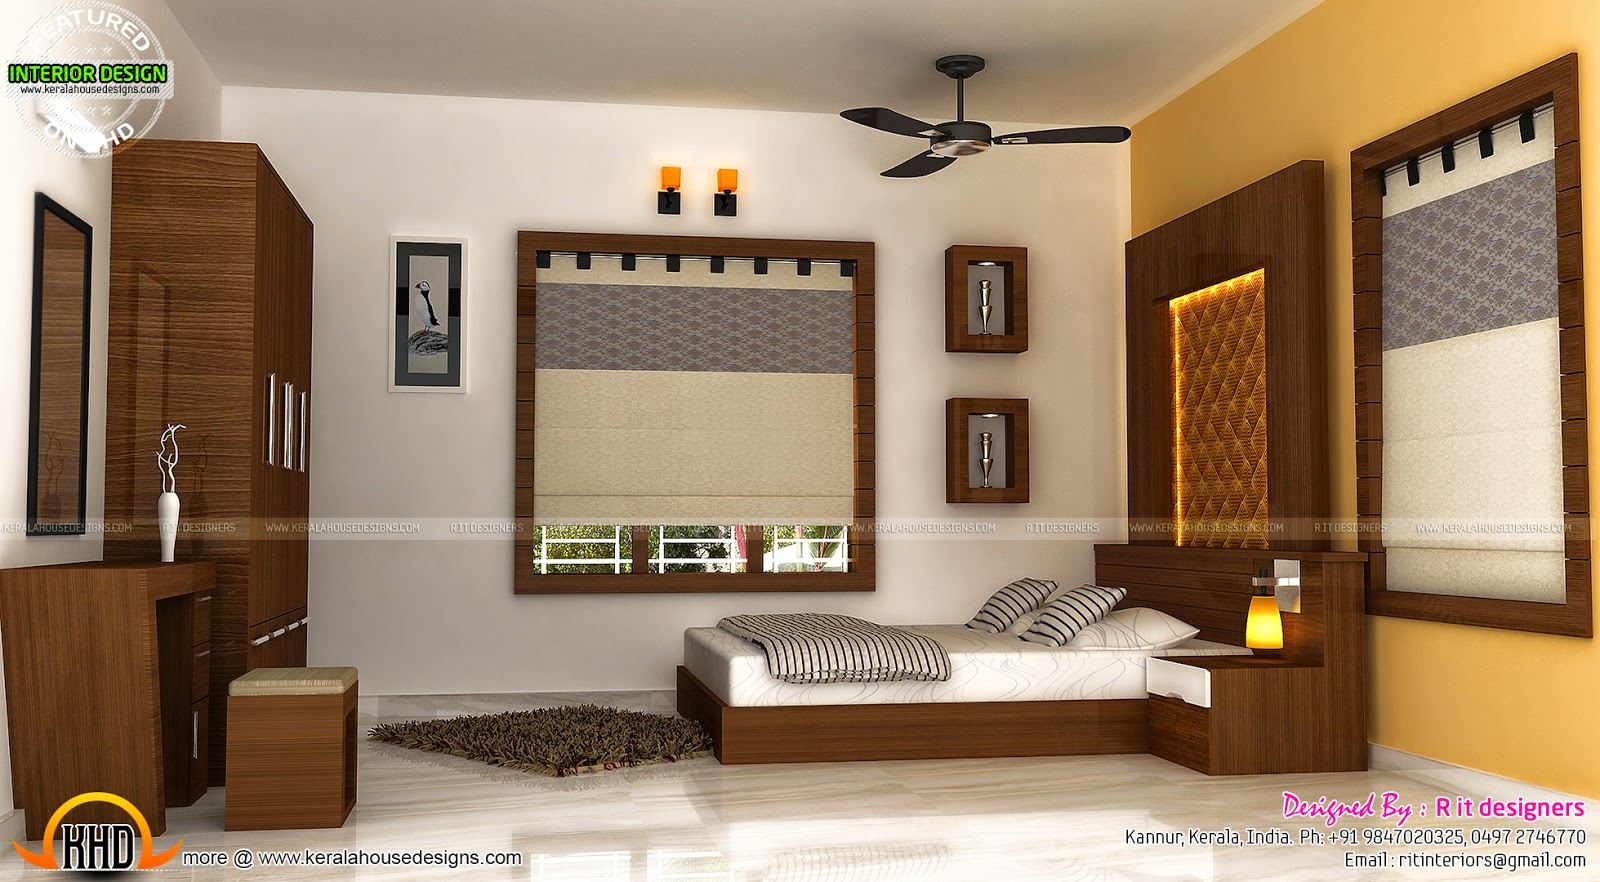 house design home furniture interior design staircase bedroom dining interiors kerala home design 26800